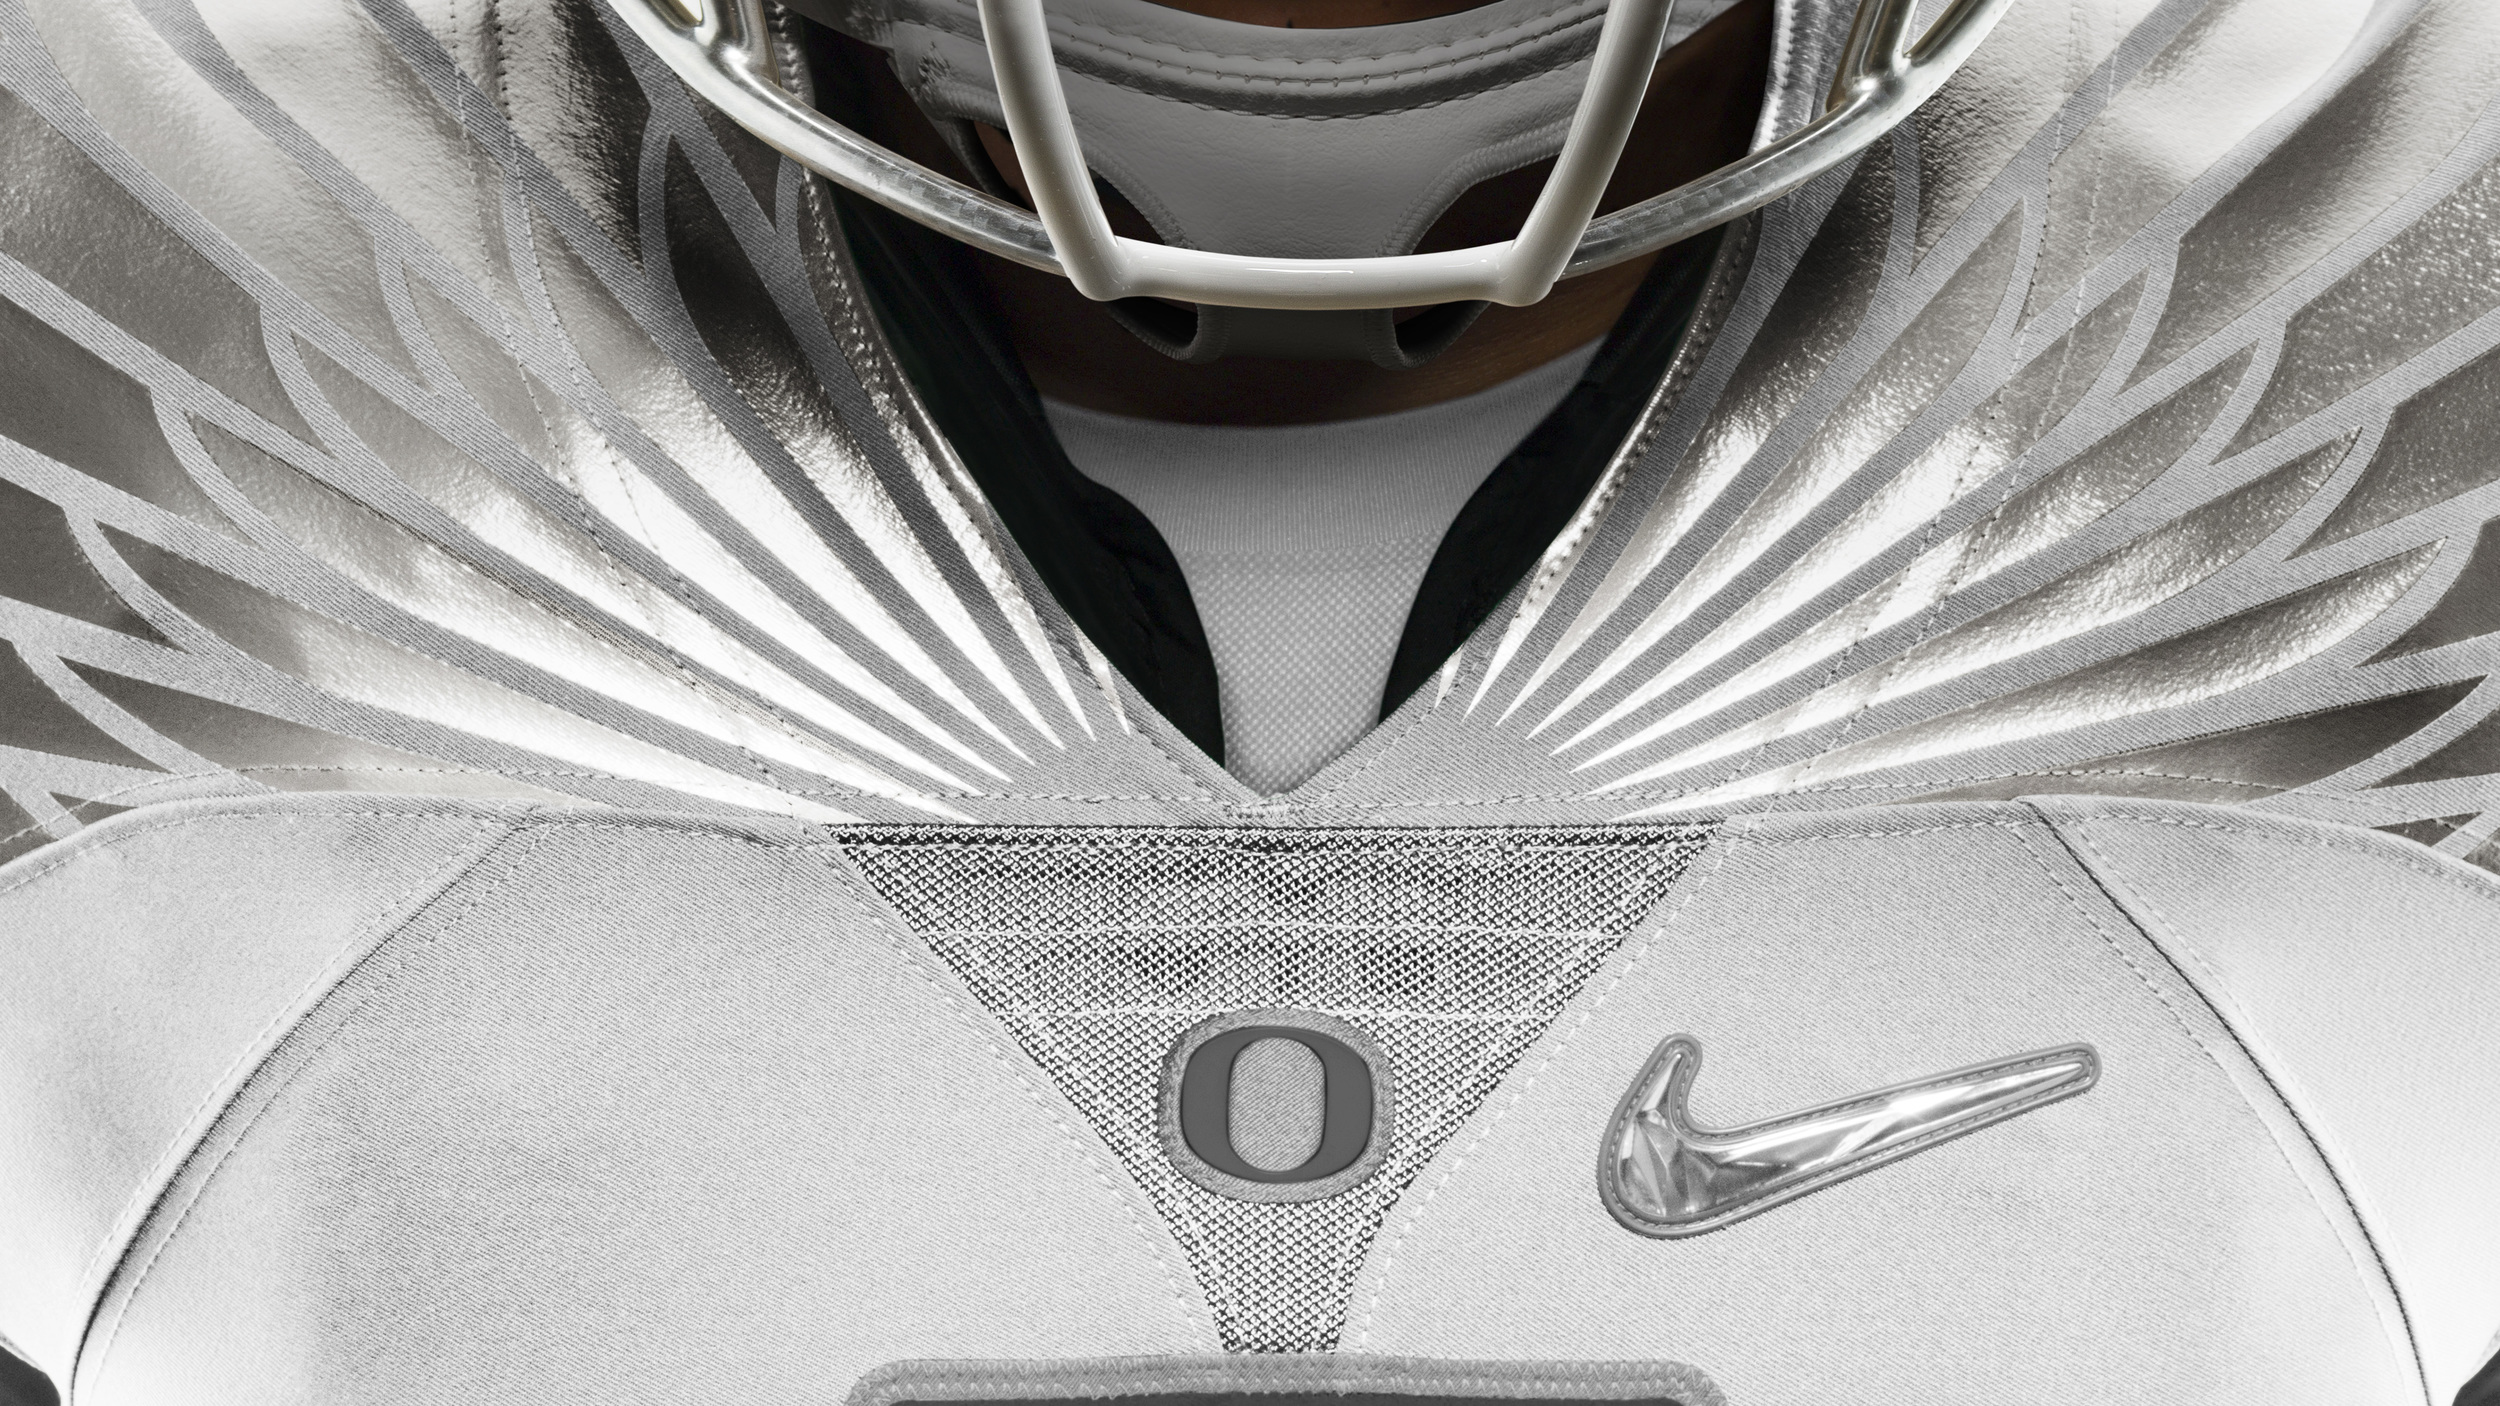 HO14_NFB_NCAA_Oregon_Details_613_RGB_crop_1_HR_36390.jpeg